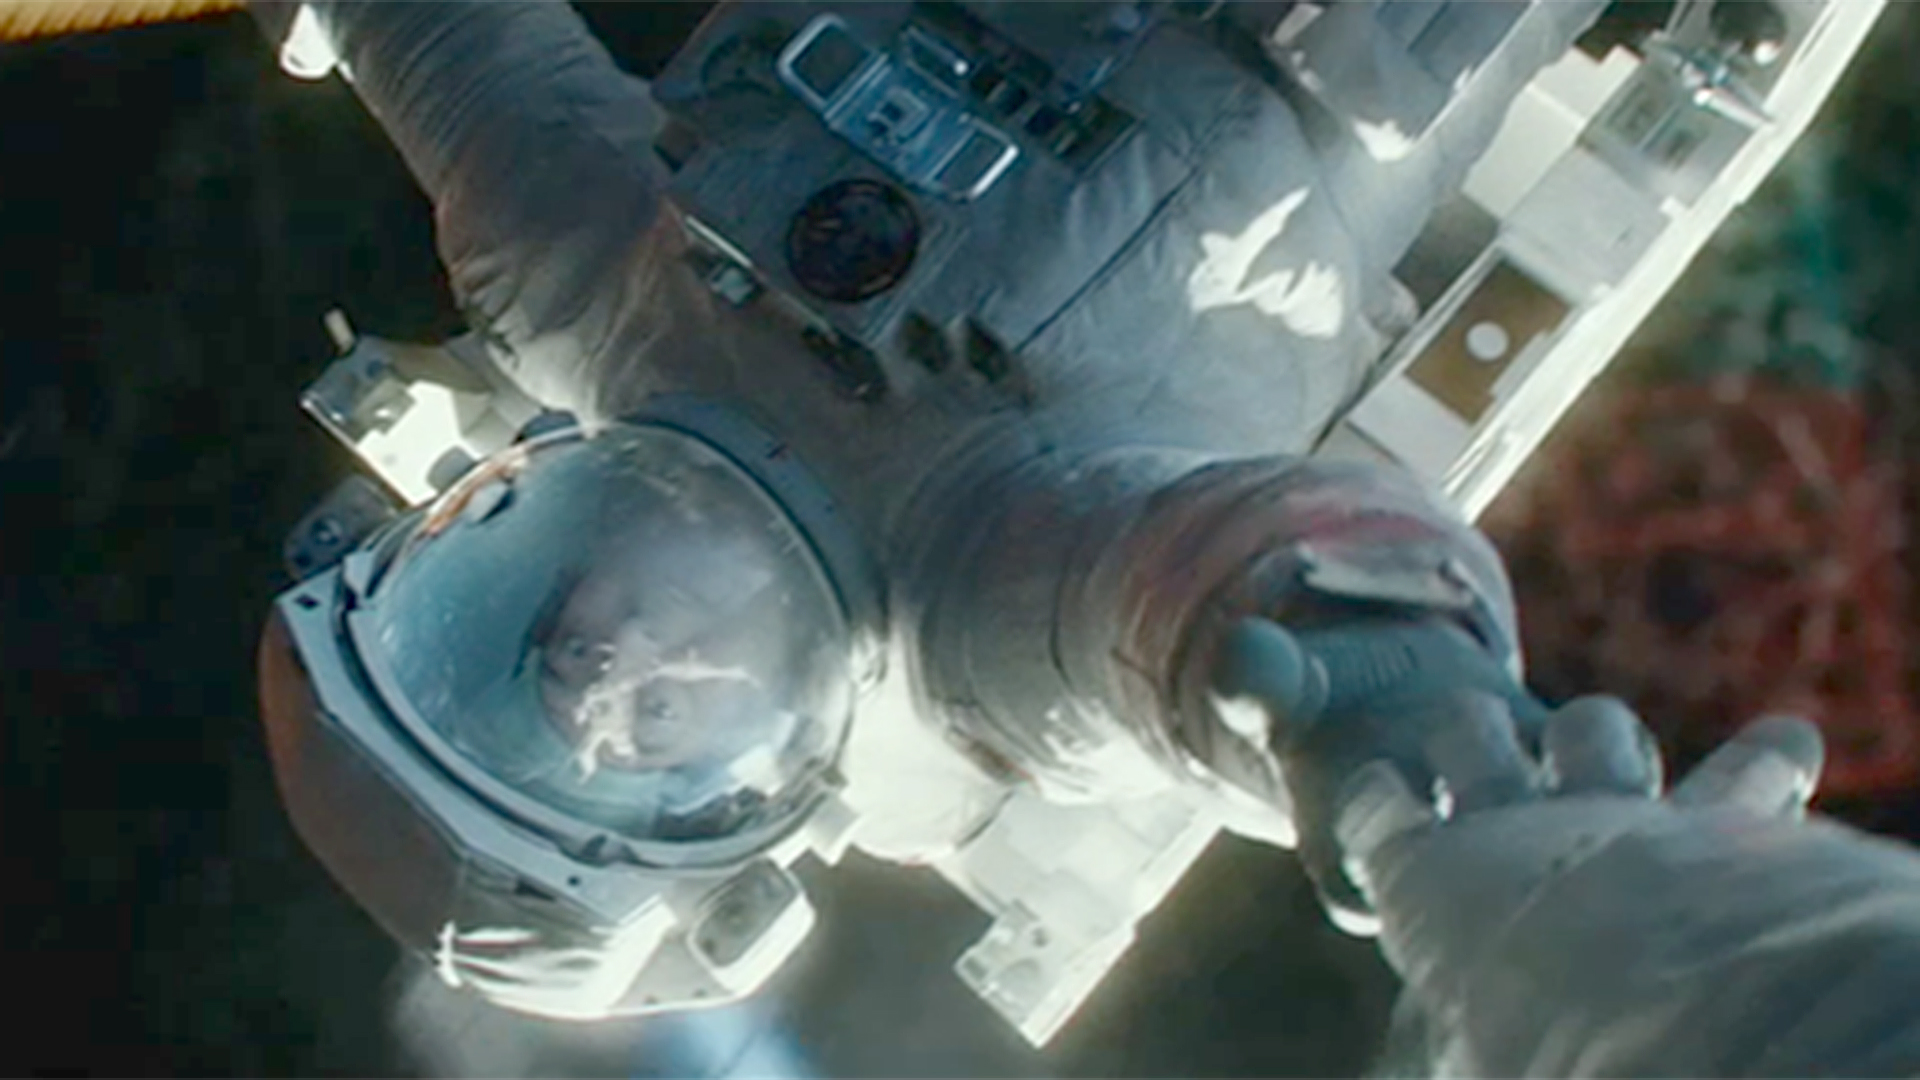 Gravity One Movie Six Of Your Worst Space Nightmares